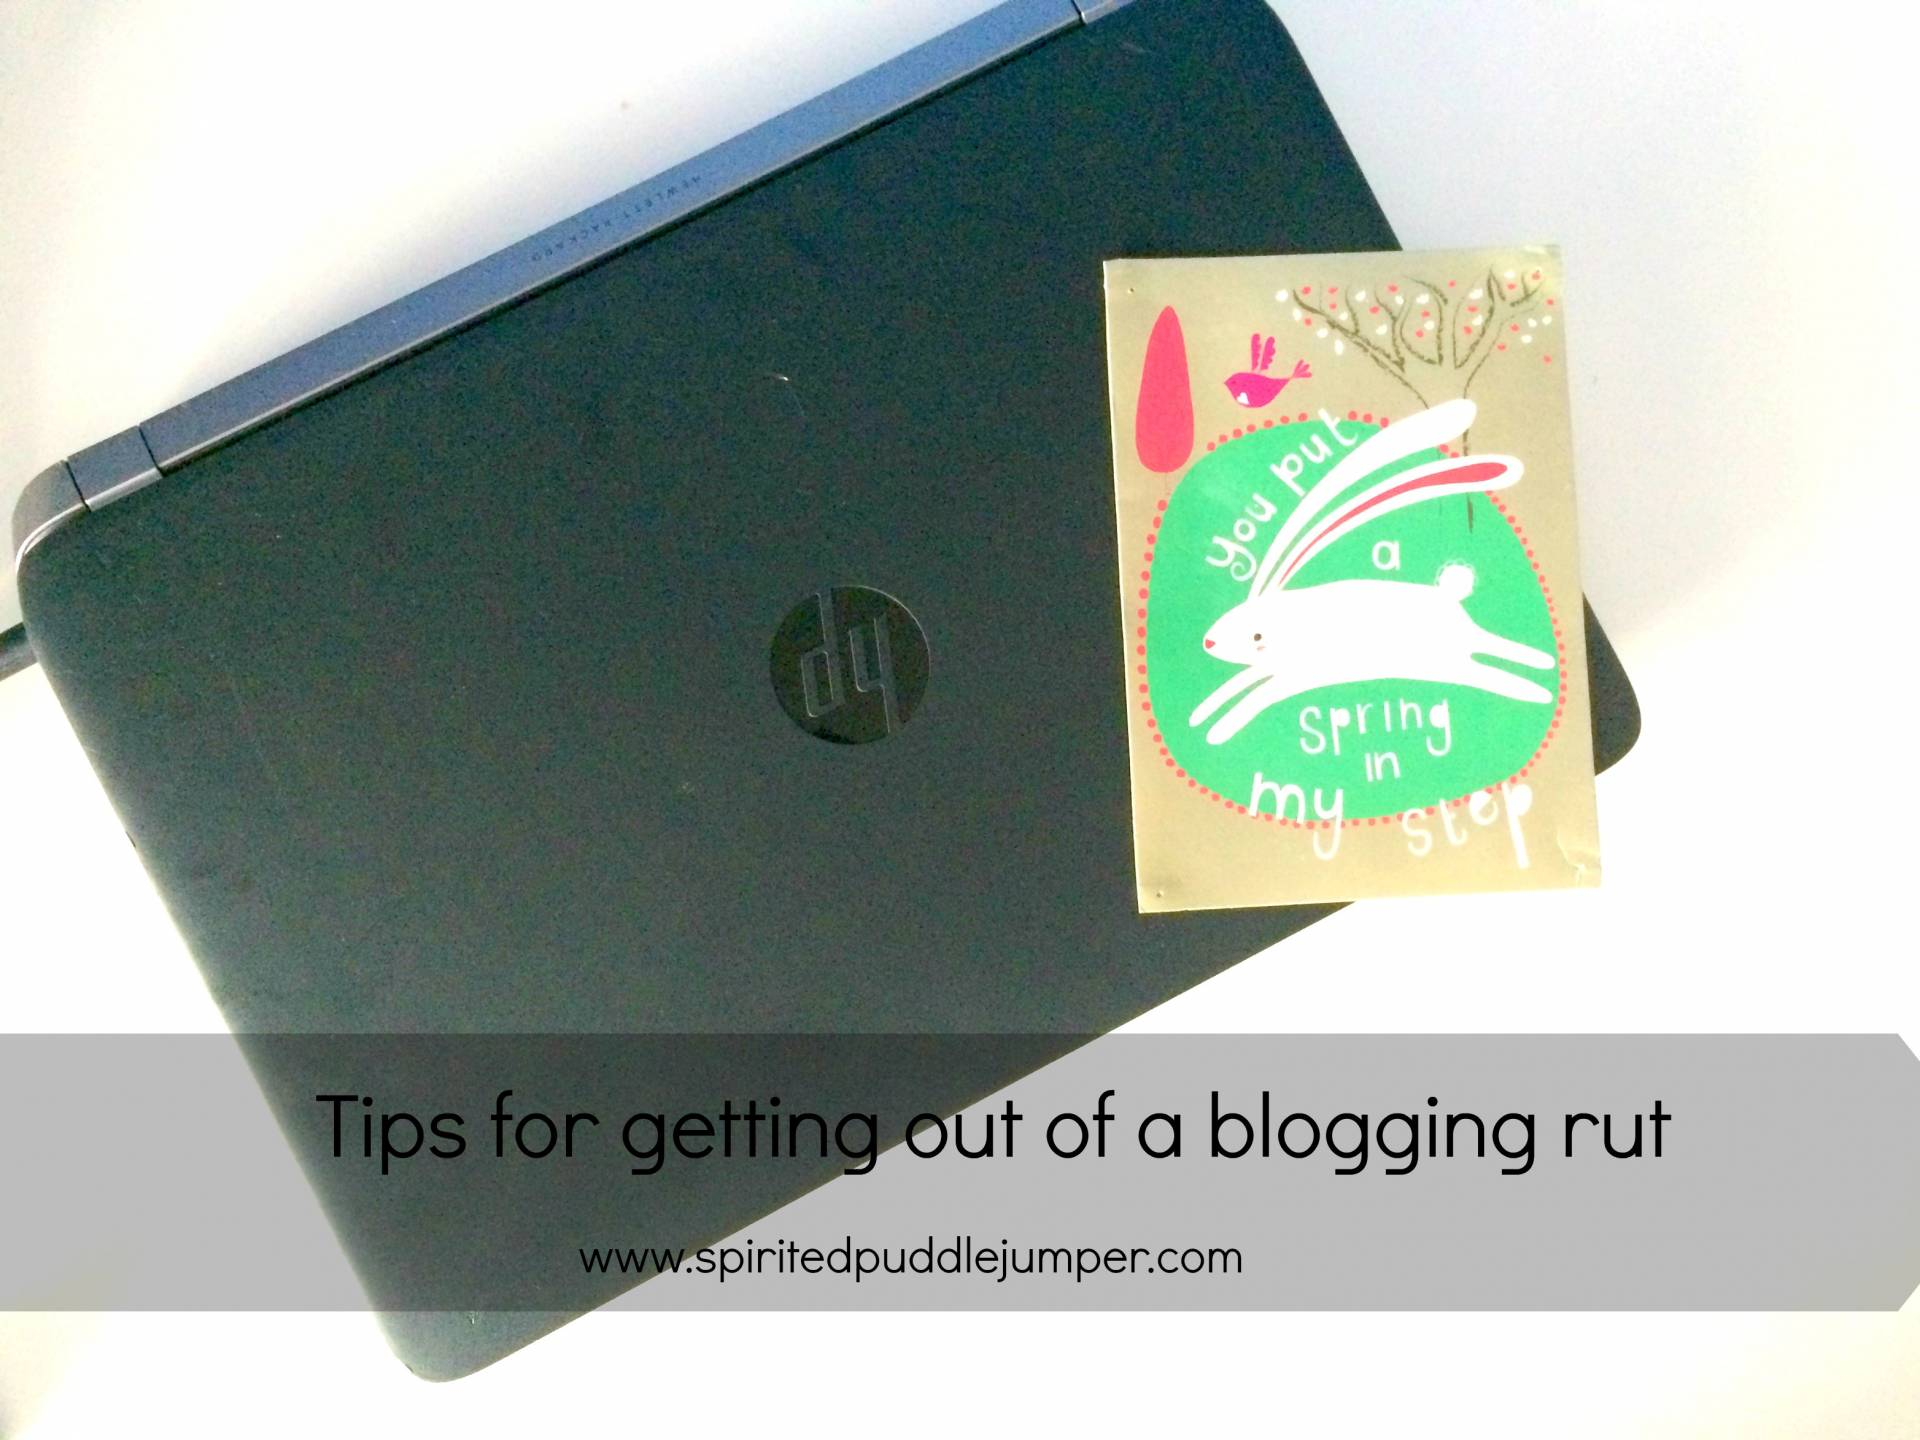 Tips for when you're in a blogging rut